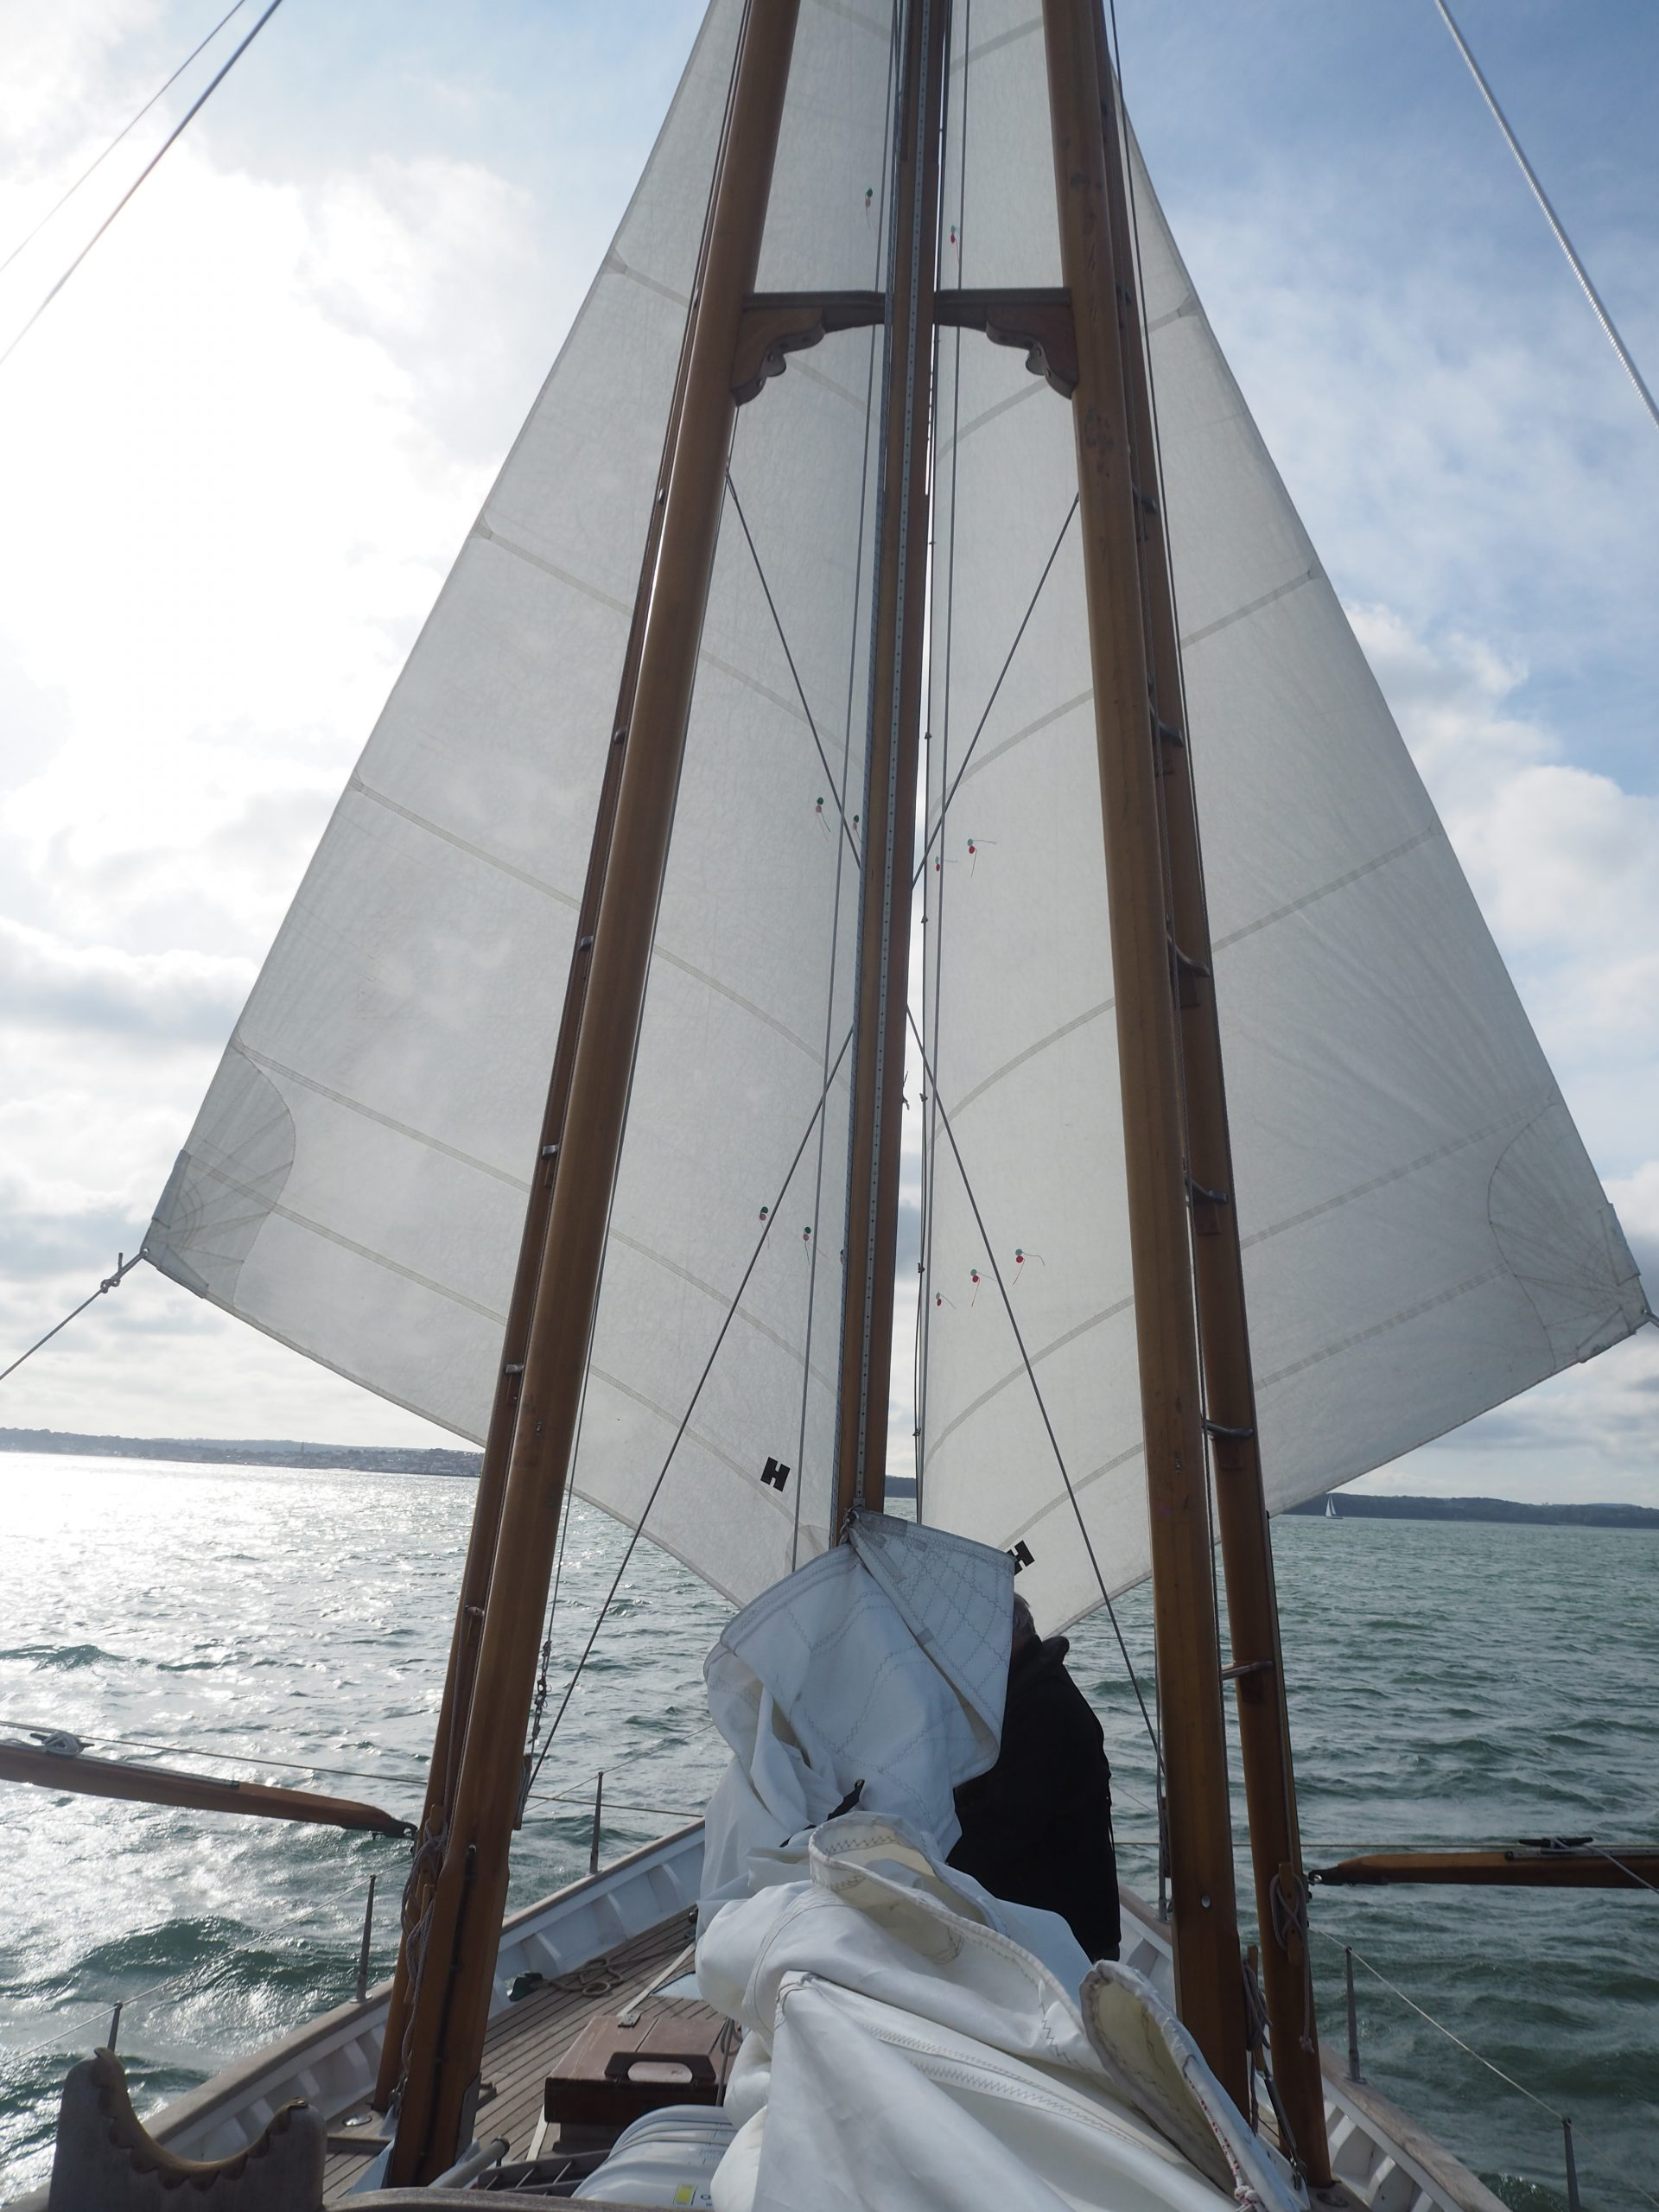 Boleh heading downwind, sporting her signature rig of boomed-out headsails and with a hint of sunshine ahead.